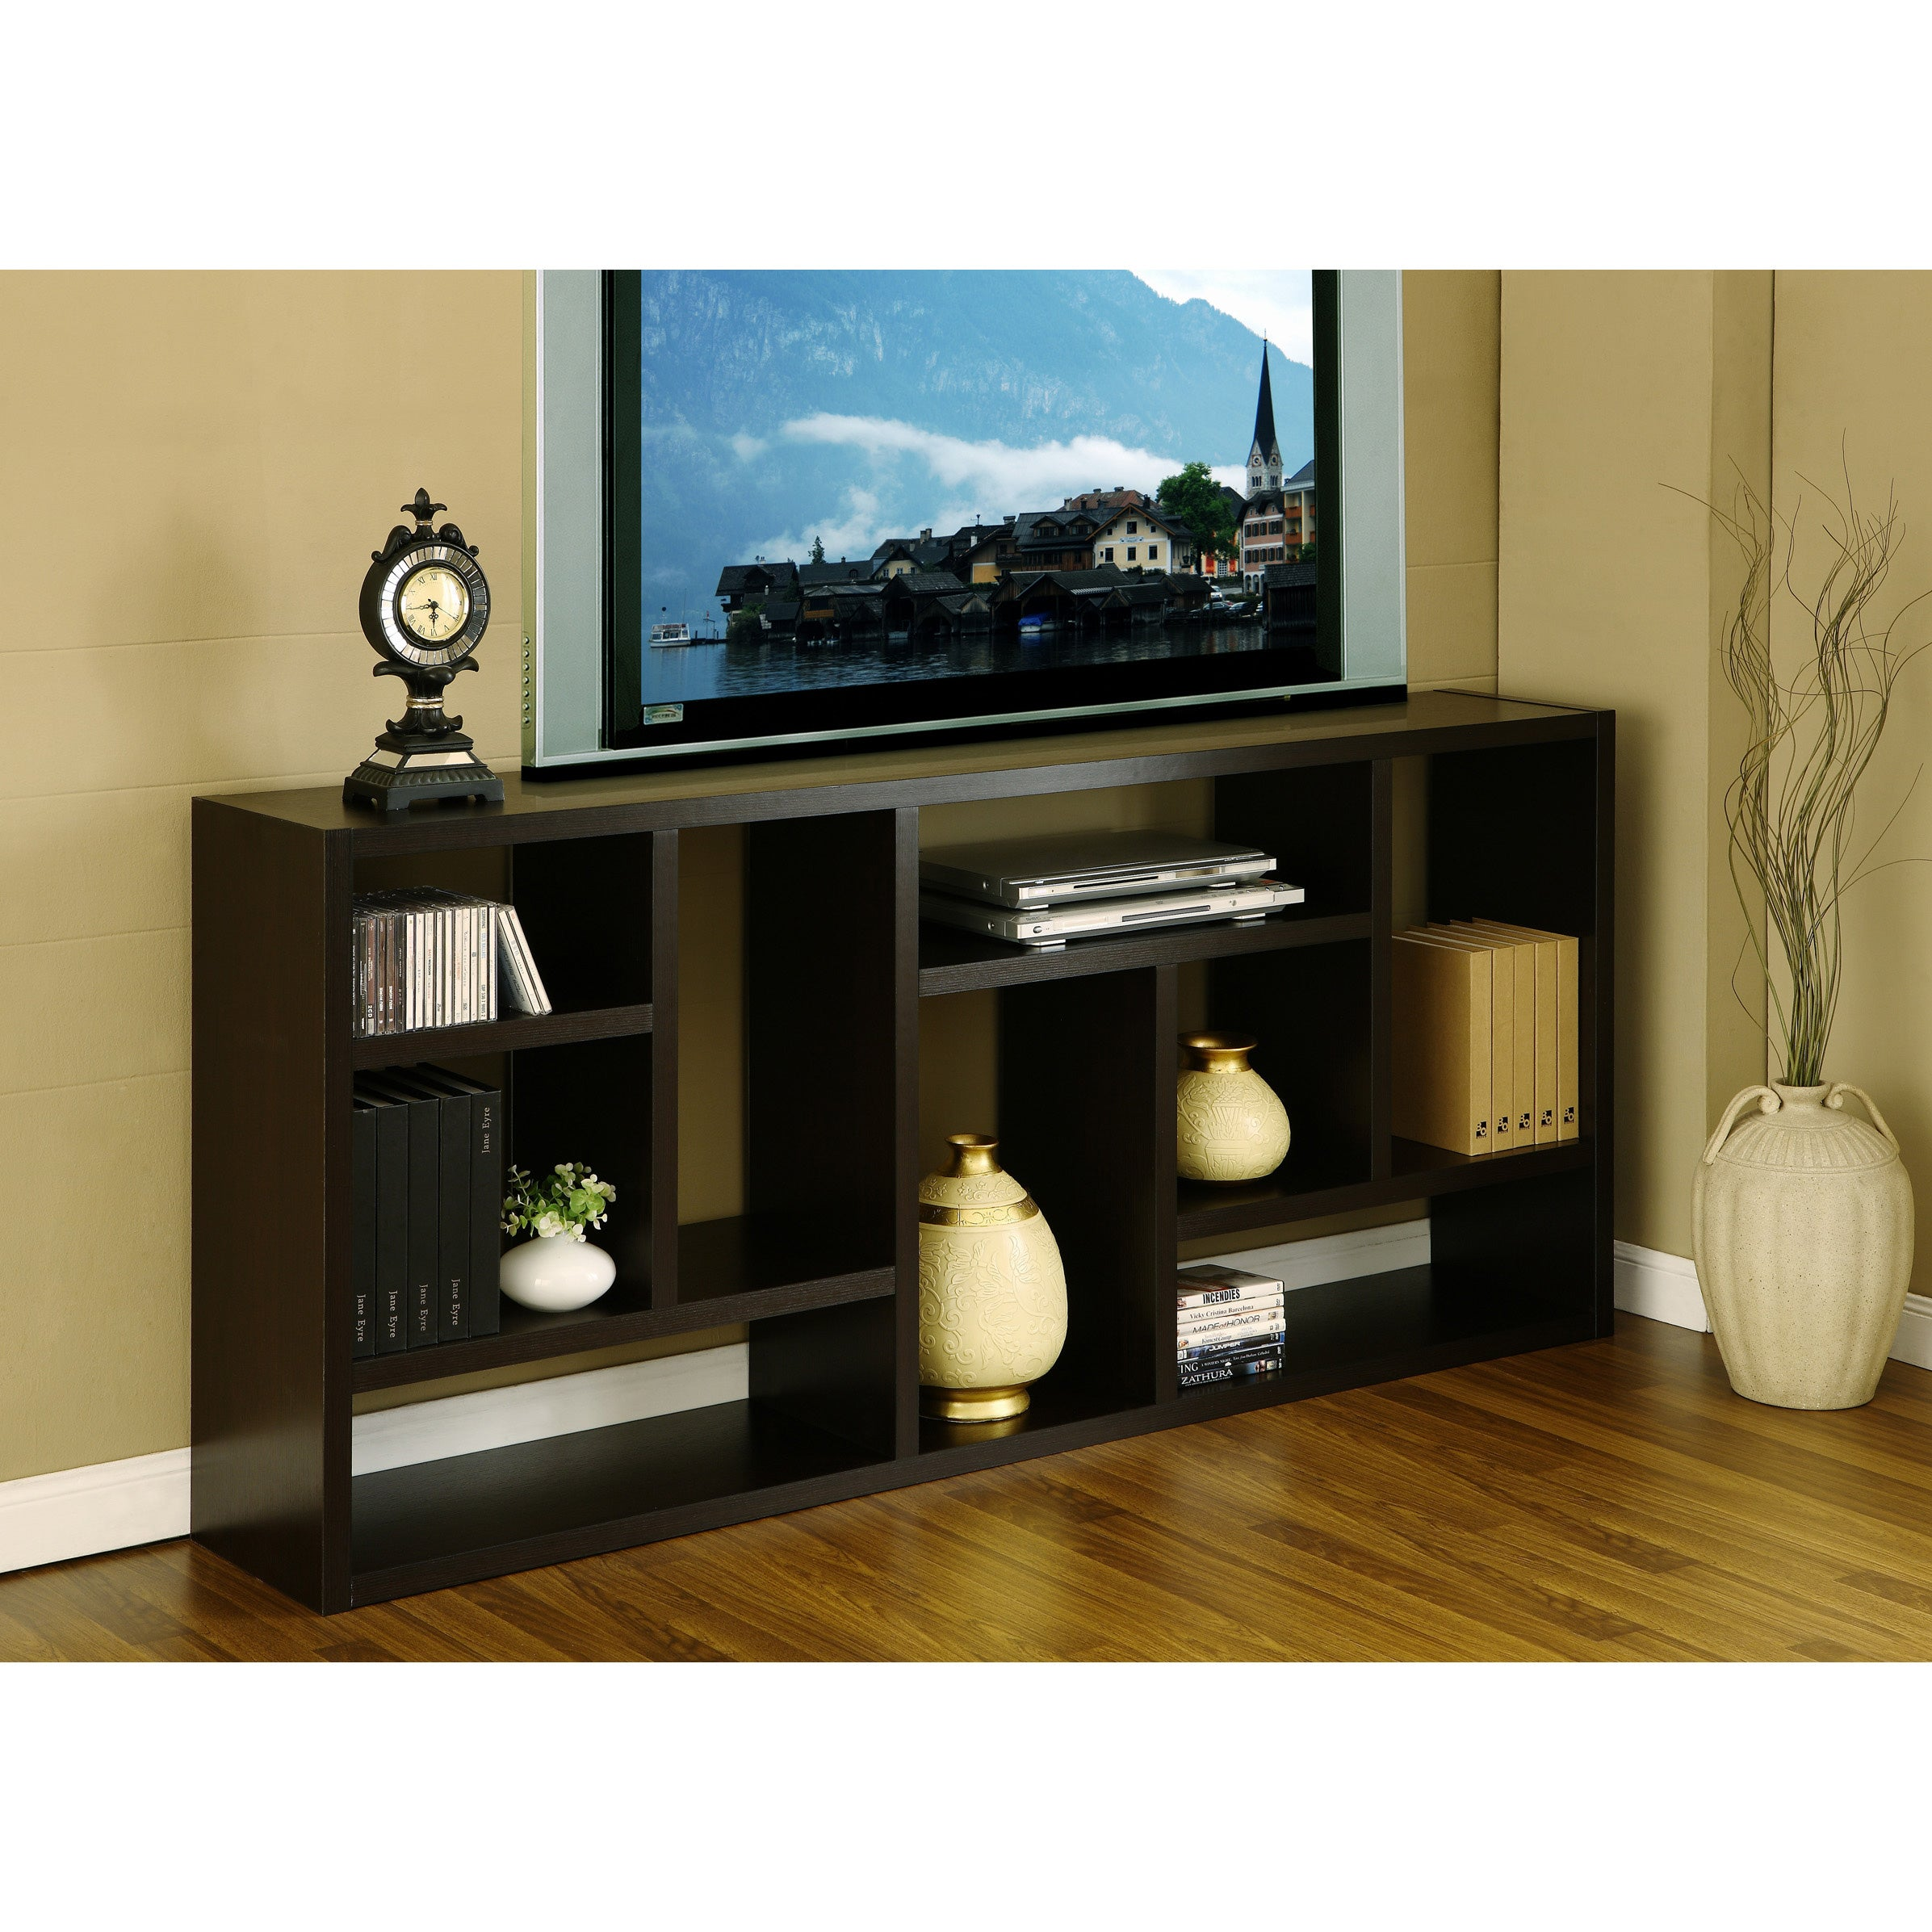 Furniture of America Multi-Purpose 3-in-1 Display Cabinet/ TV Stand/ Bookcase at Sears.com